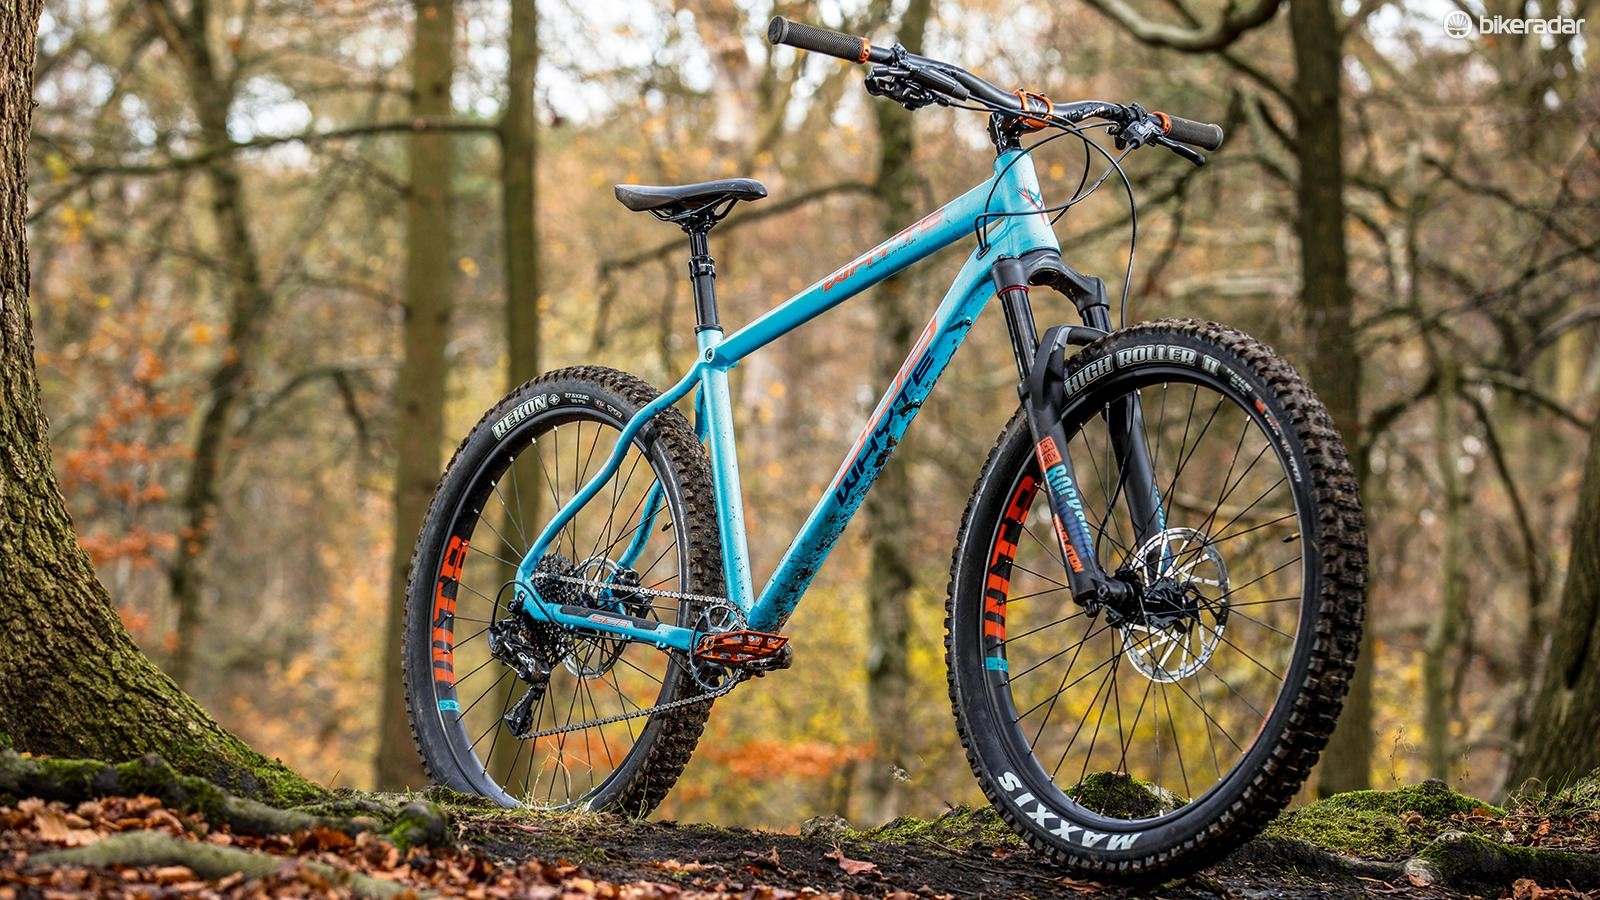 45ffa69208f Whyte uses a 650b RockShox Revelation RC fork with colour-matched graphics  and custom 42mm